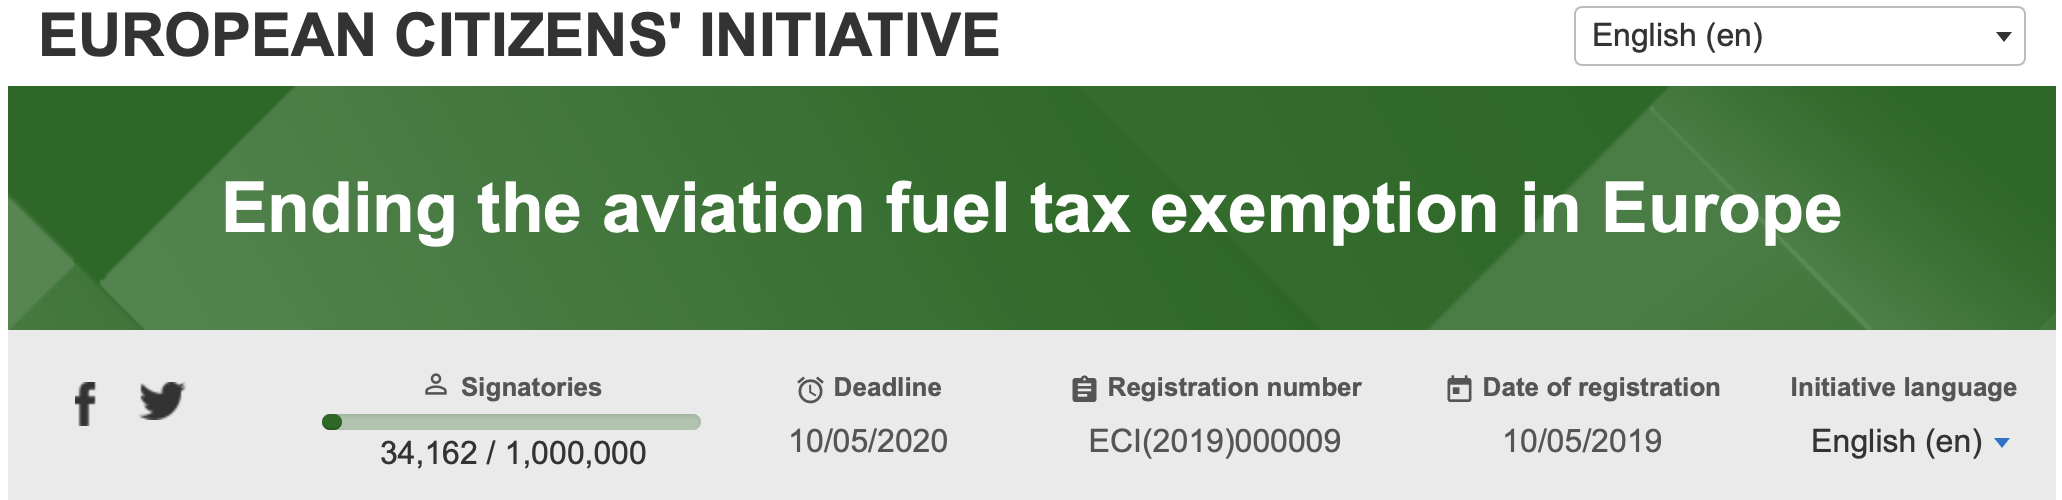 The true (environmental) cost of flying should be reflecting in the price - s   ign the petition    to end aviation fuel tax exemption in Europe